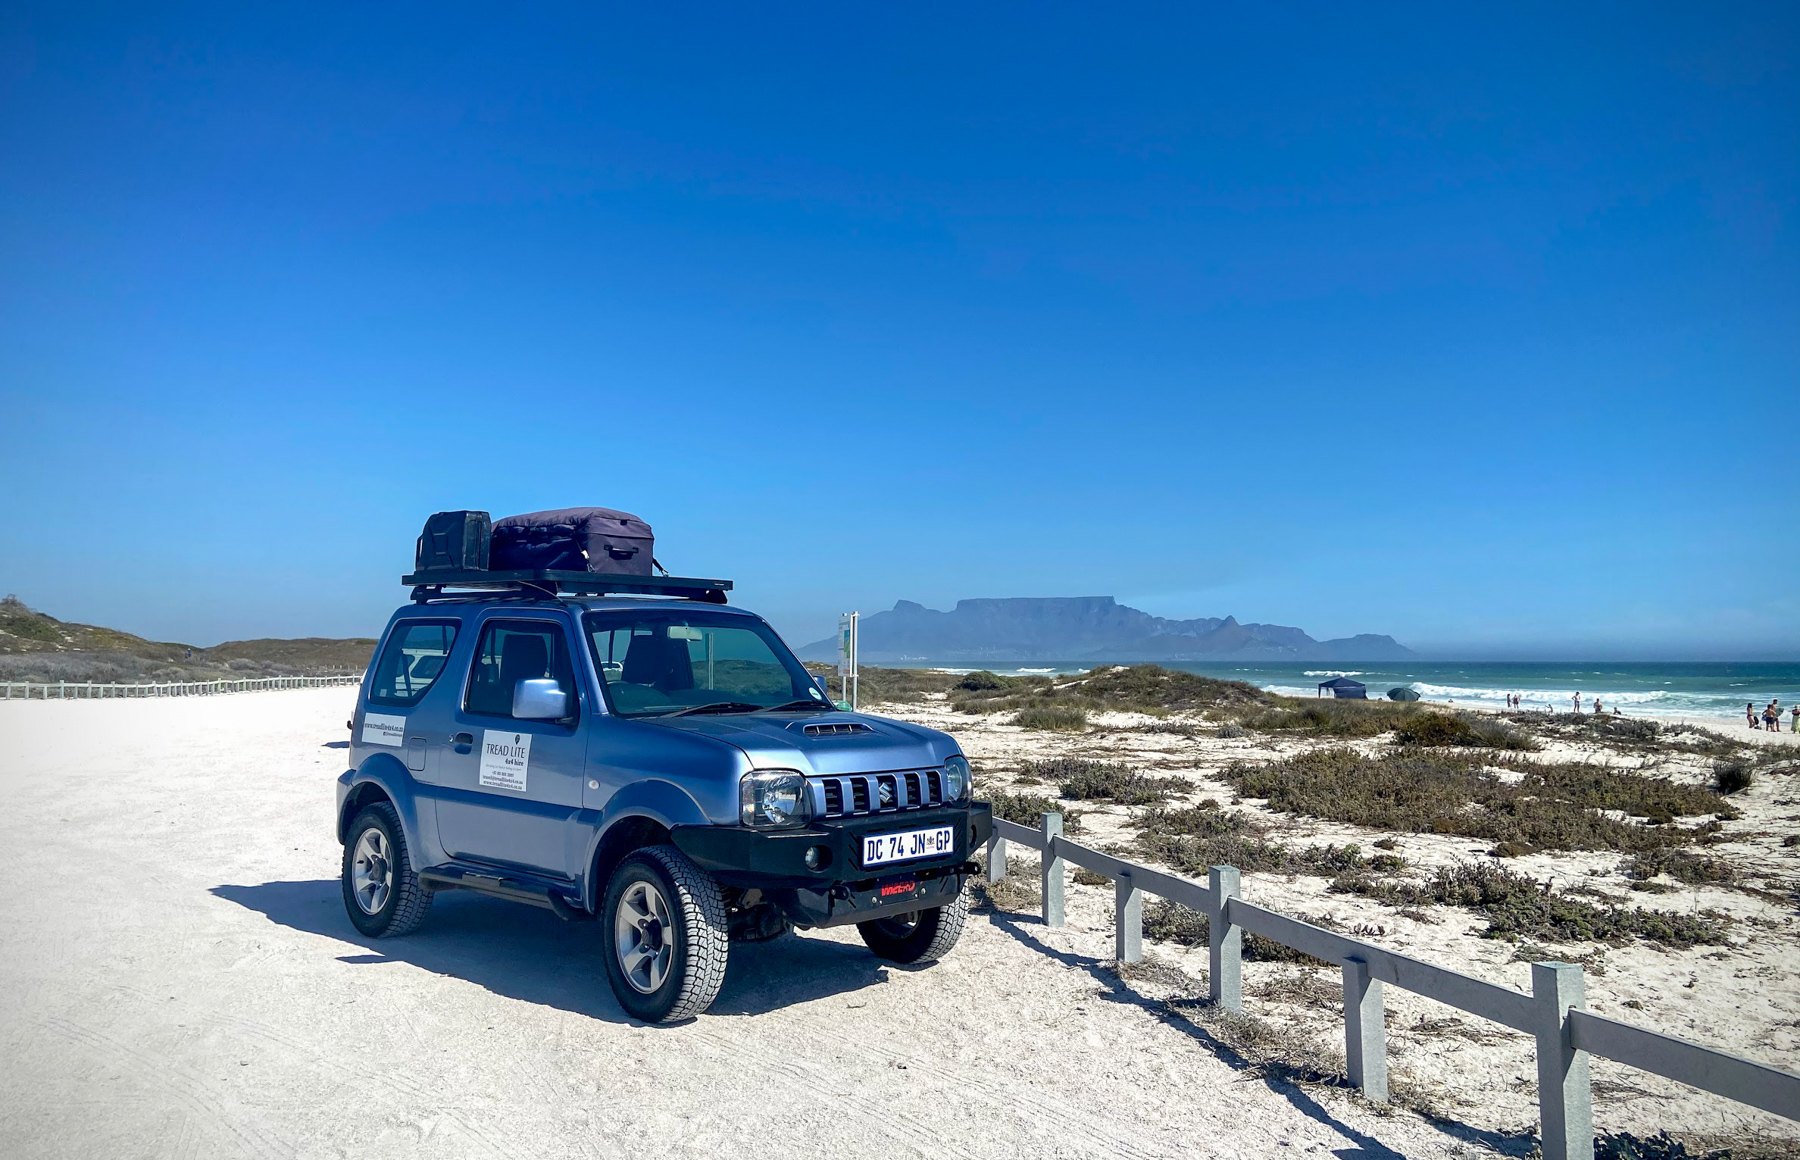 Exploring South Africa in a Suzuki Jimny